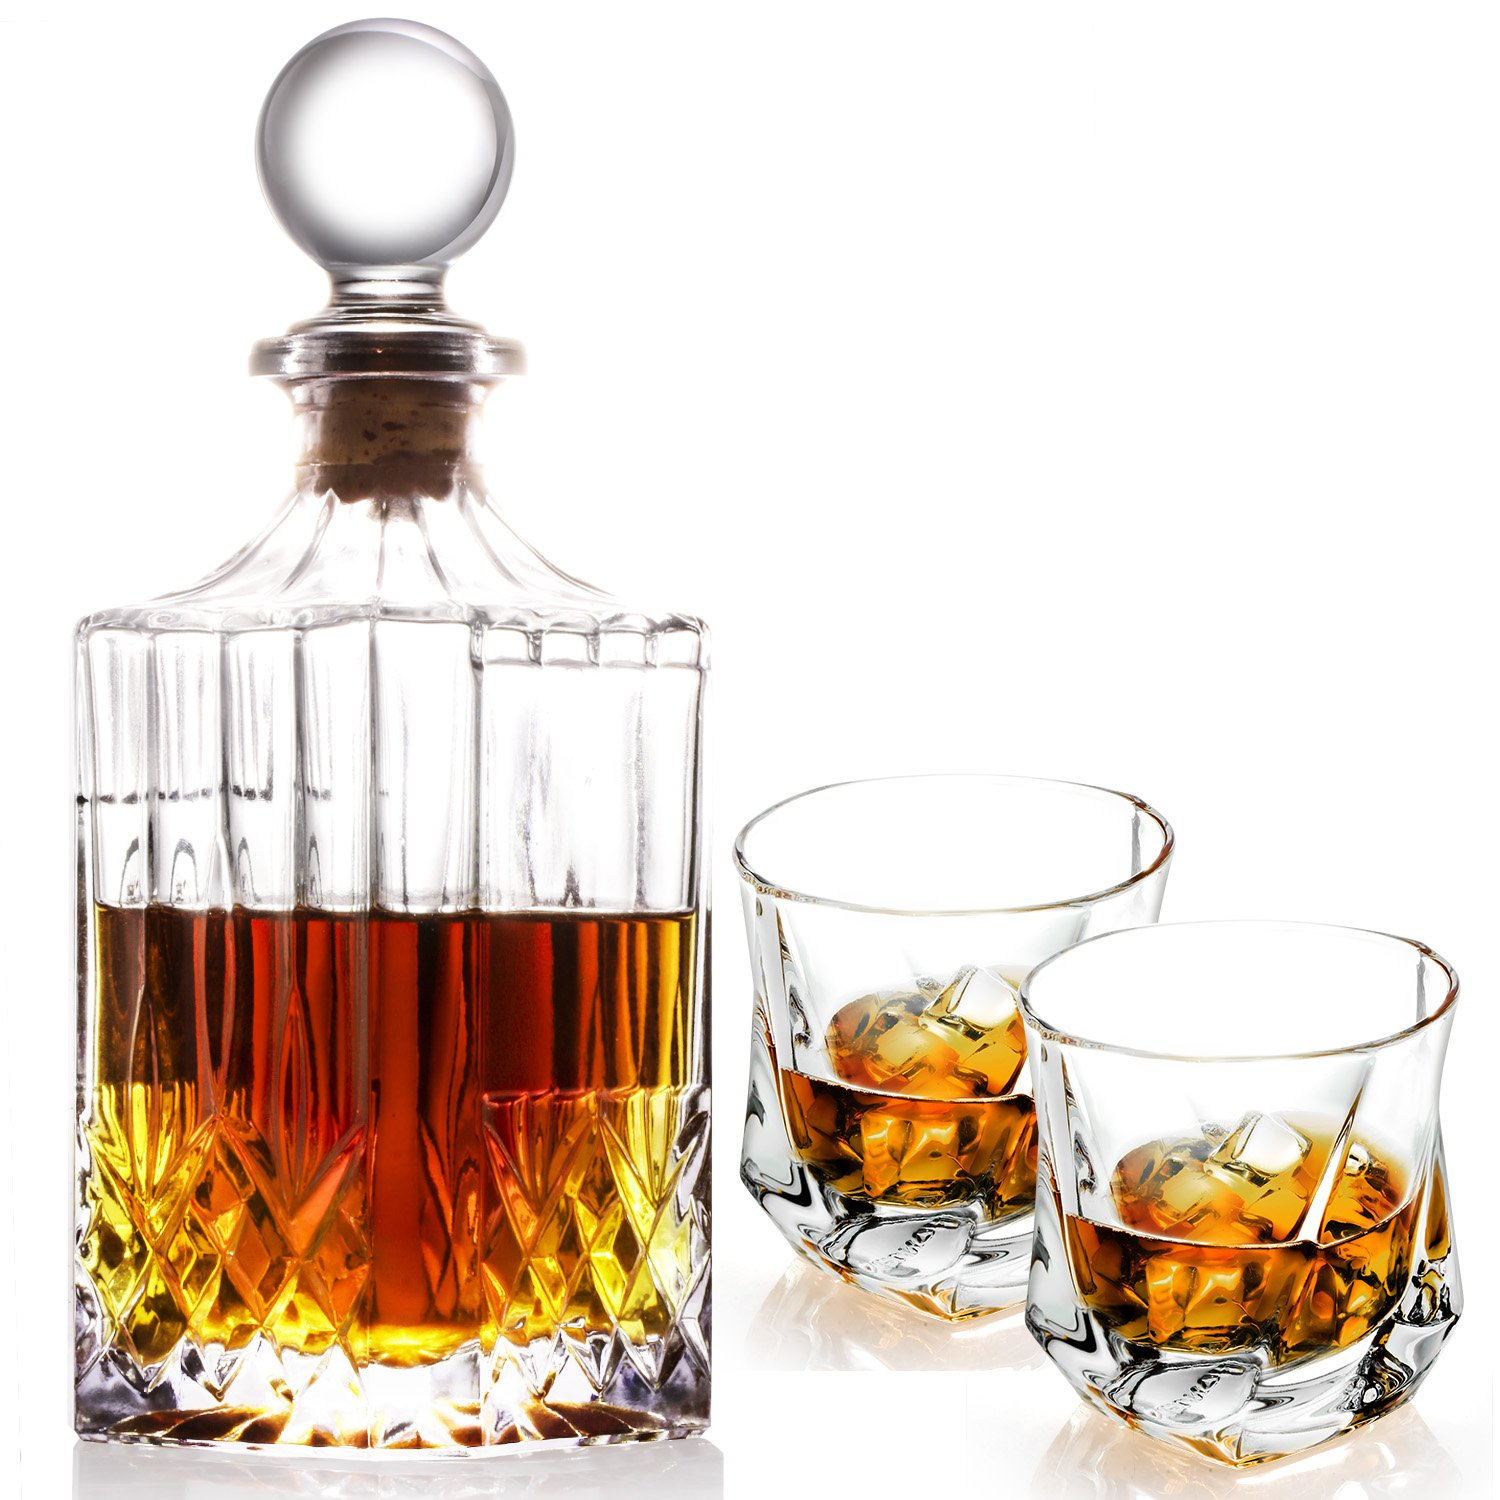 Lovinpro Crafted Whiskey Decanter Set - Elegant Whiskey Glass Set with Ornate Stopper and 2 Piece of Twist Whiskey Glasses by Lovinpro